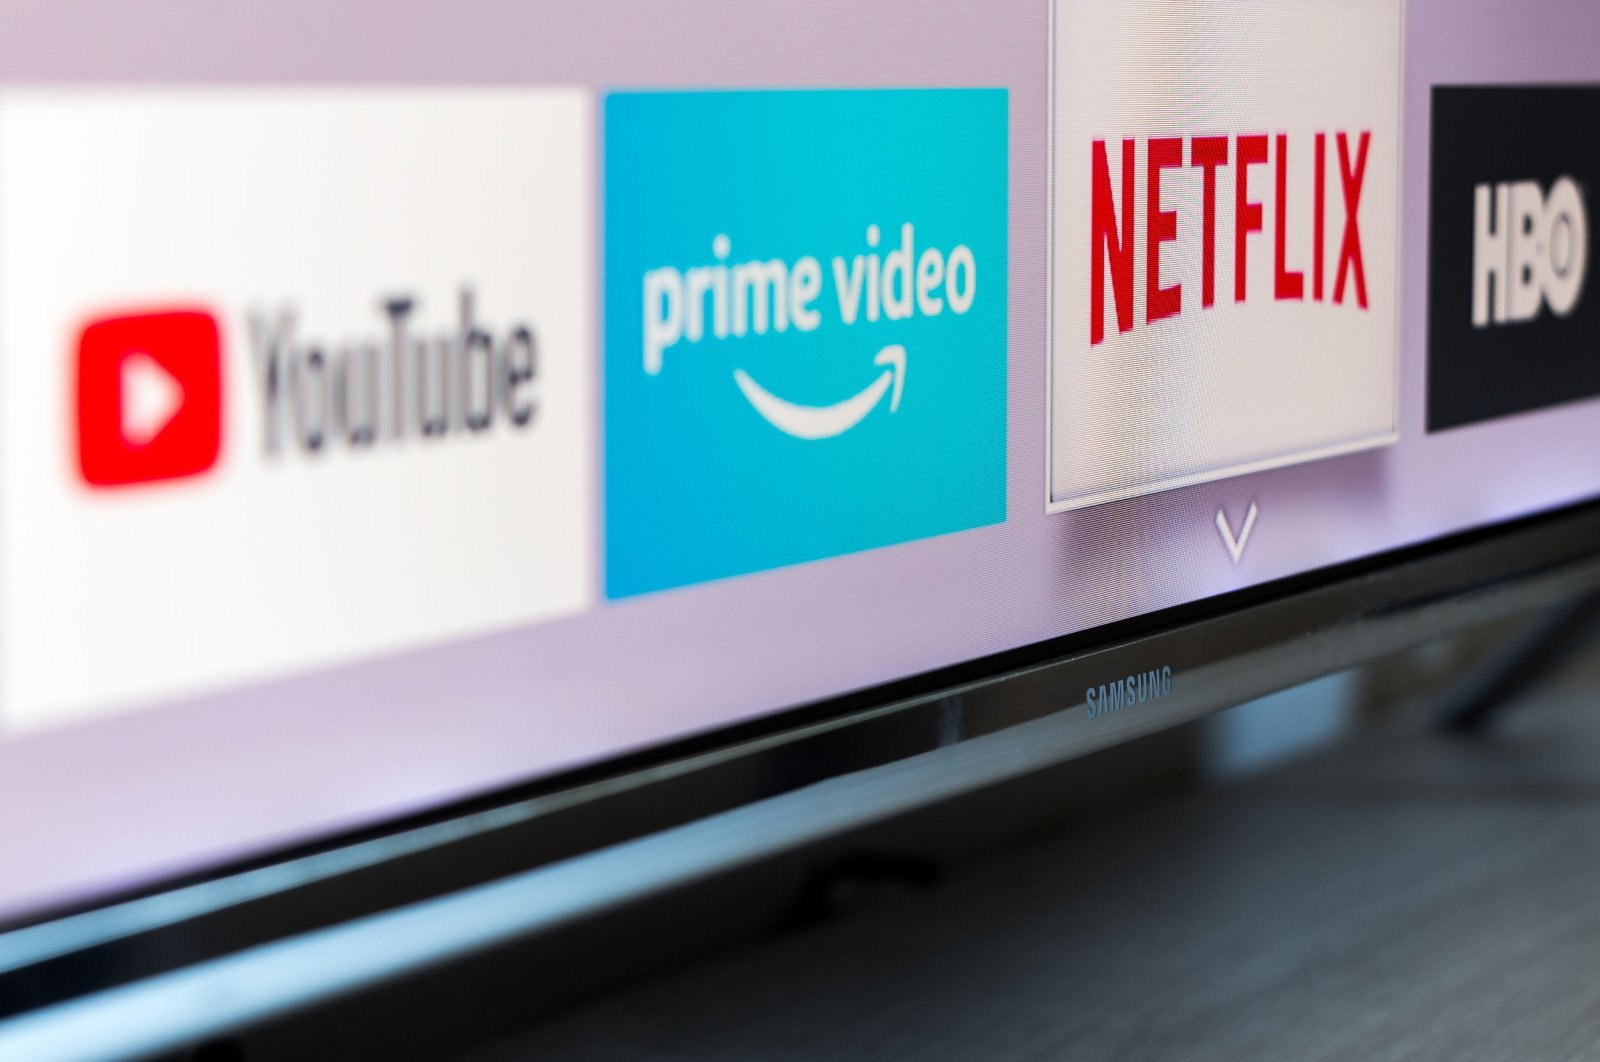 Logos of several streaming services, including YouTube, Amazon Prime Video, Netflix and HBO, are displayed on a television screen, Madrid, Spain, Aug. 13, 2018. (Shutterstock Photo)